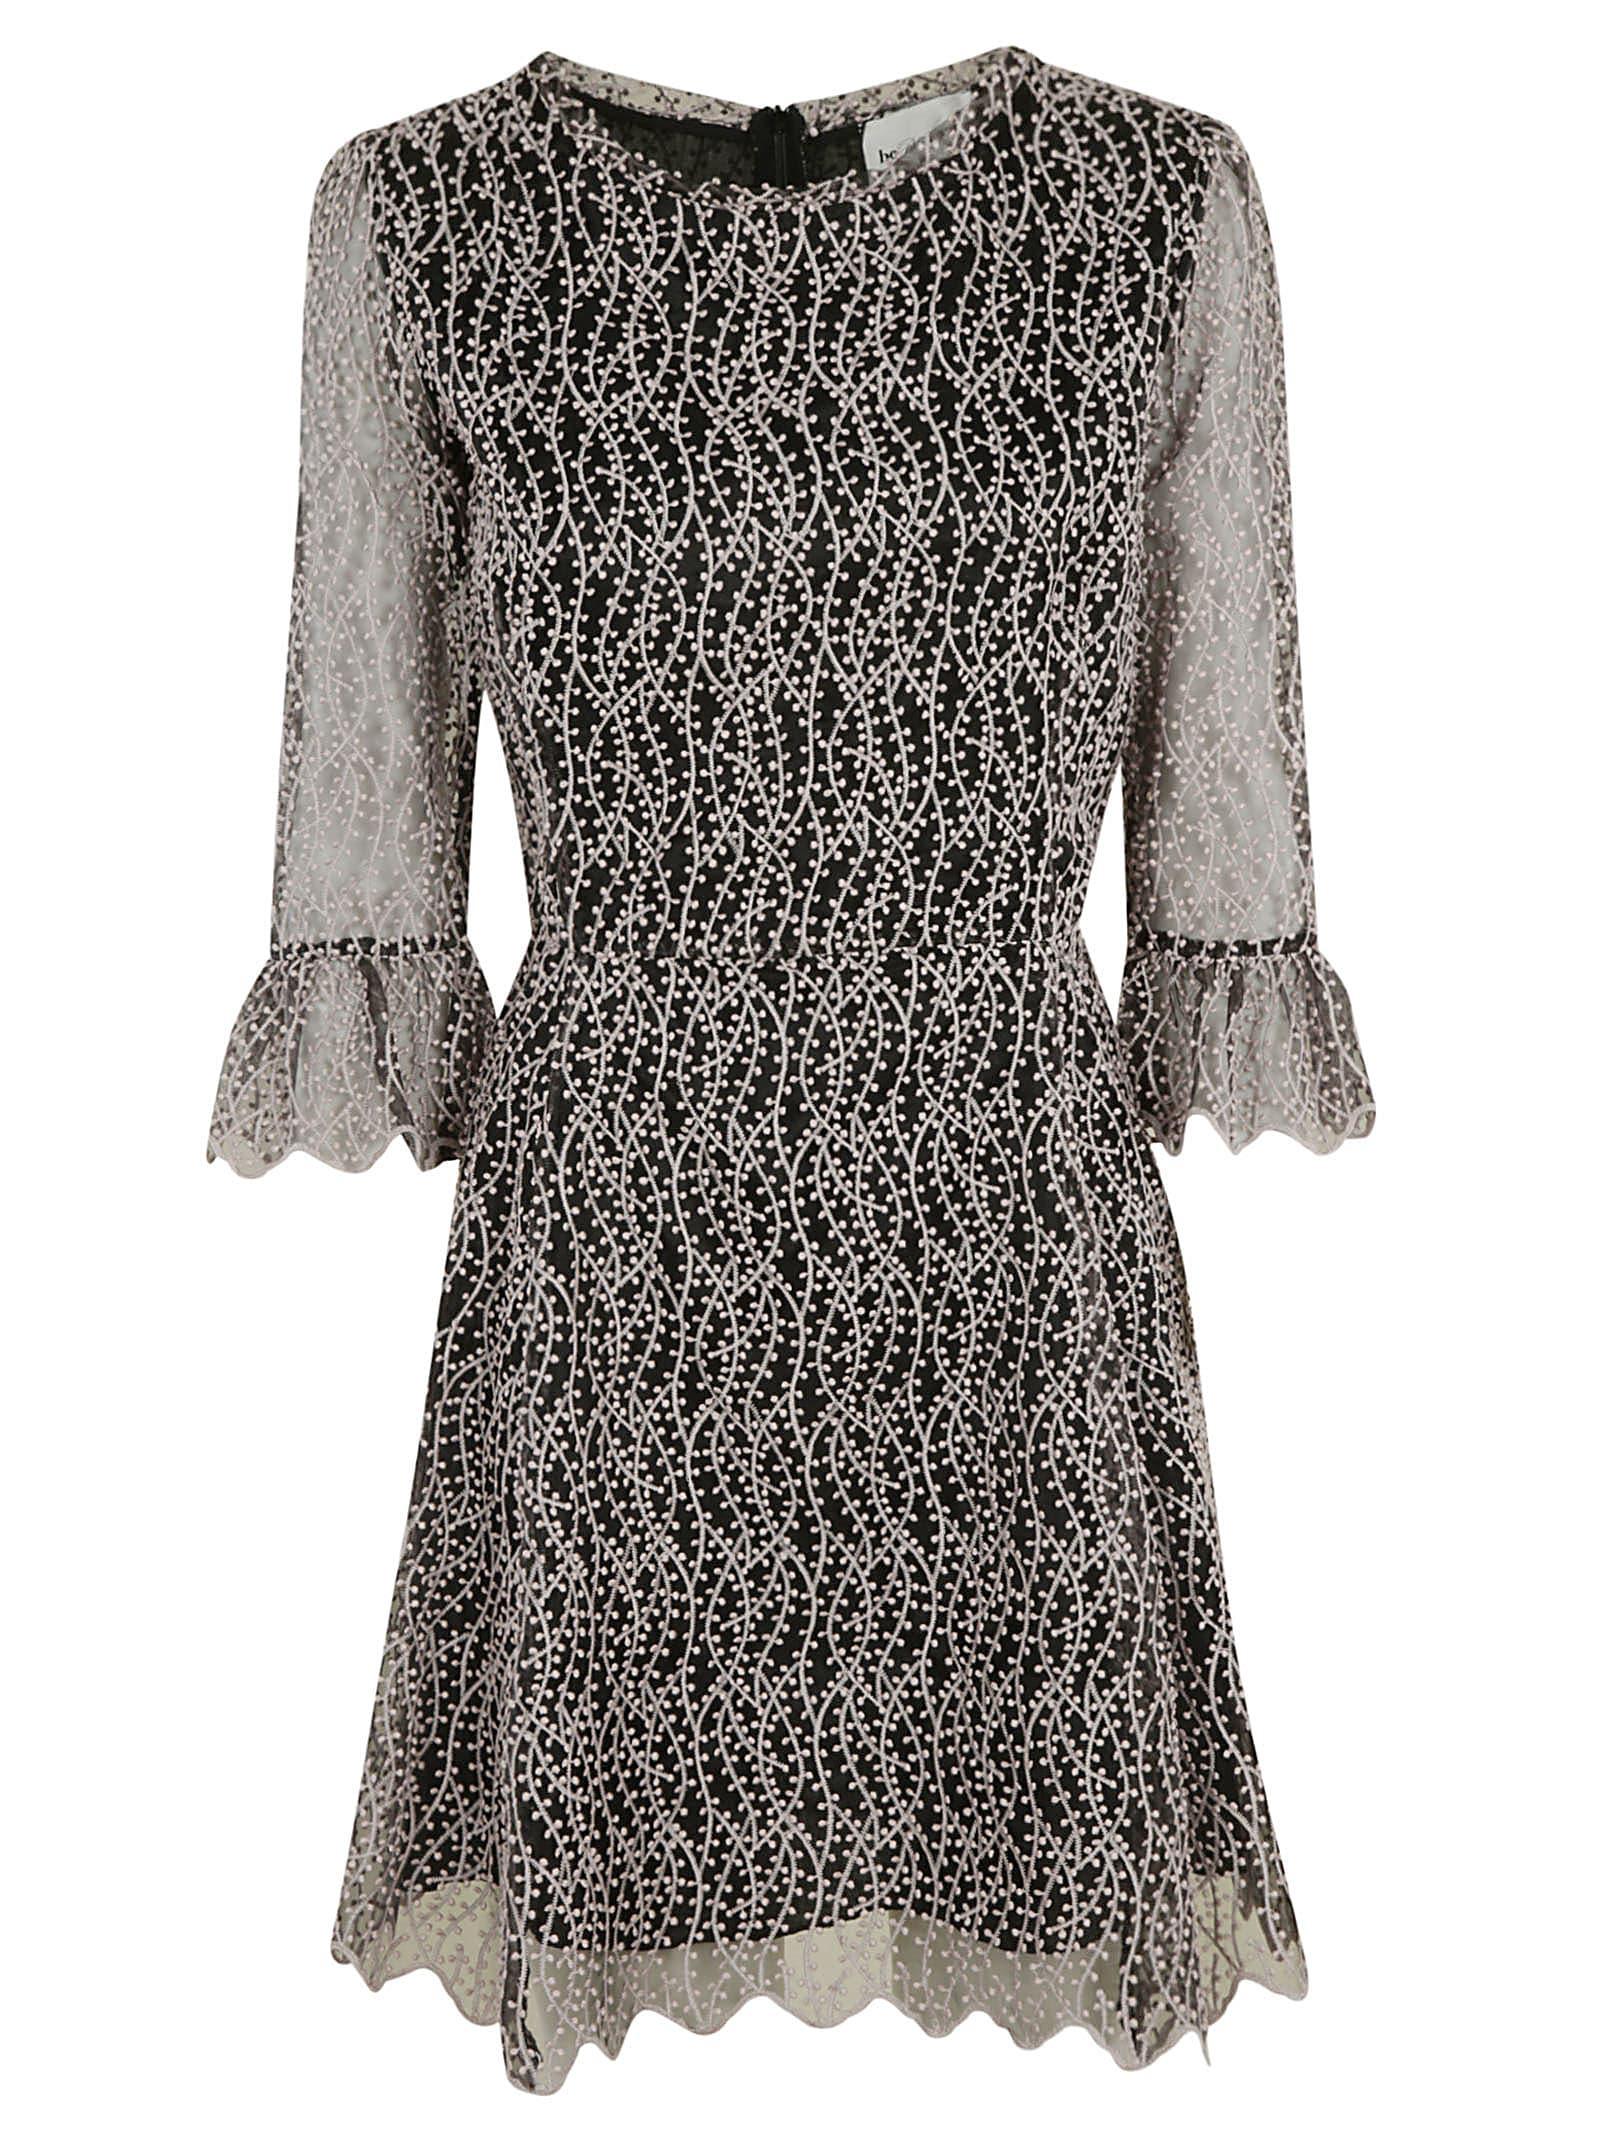 Buy Be Blumarine Lace Detail Short Dress online, shop Be Blumarine with free shipping